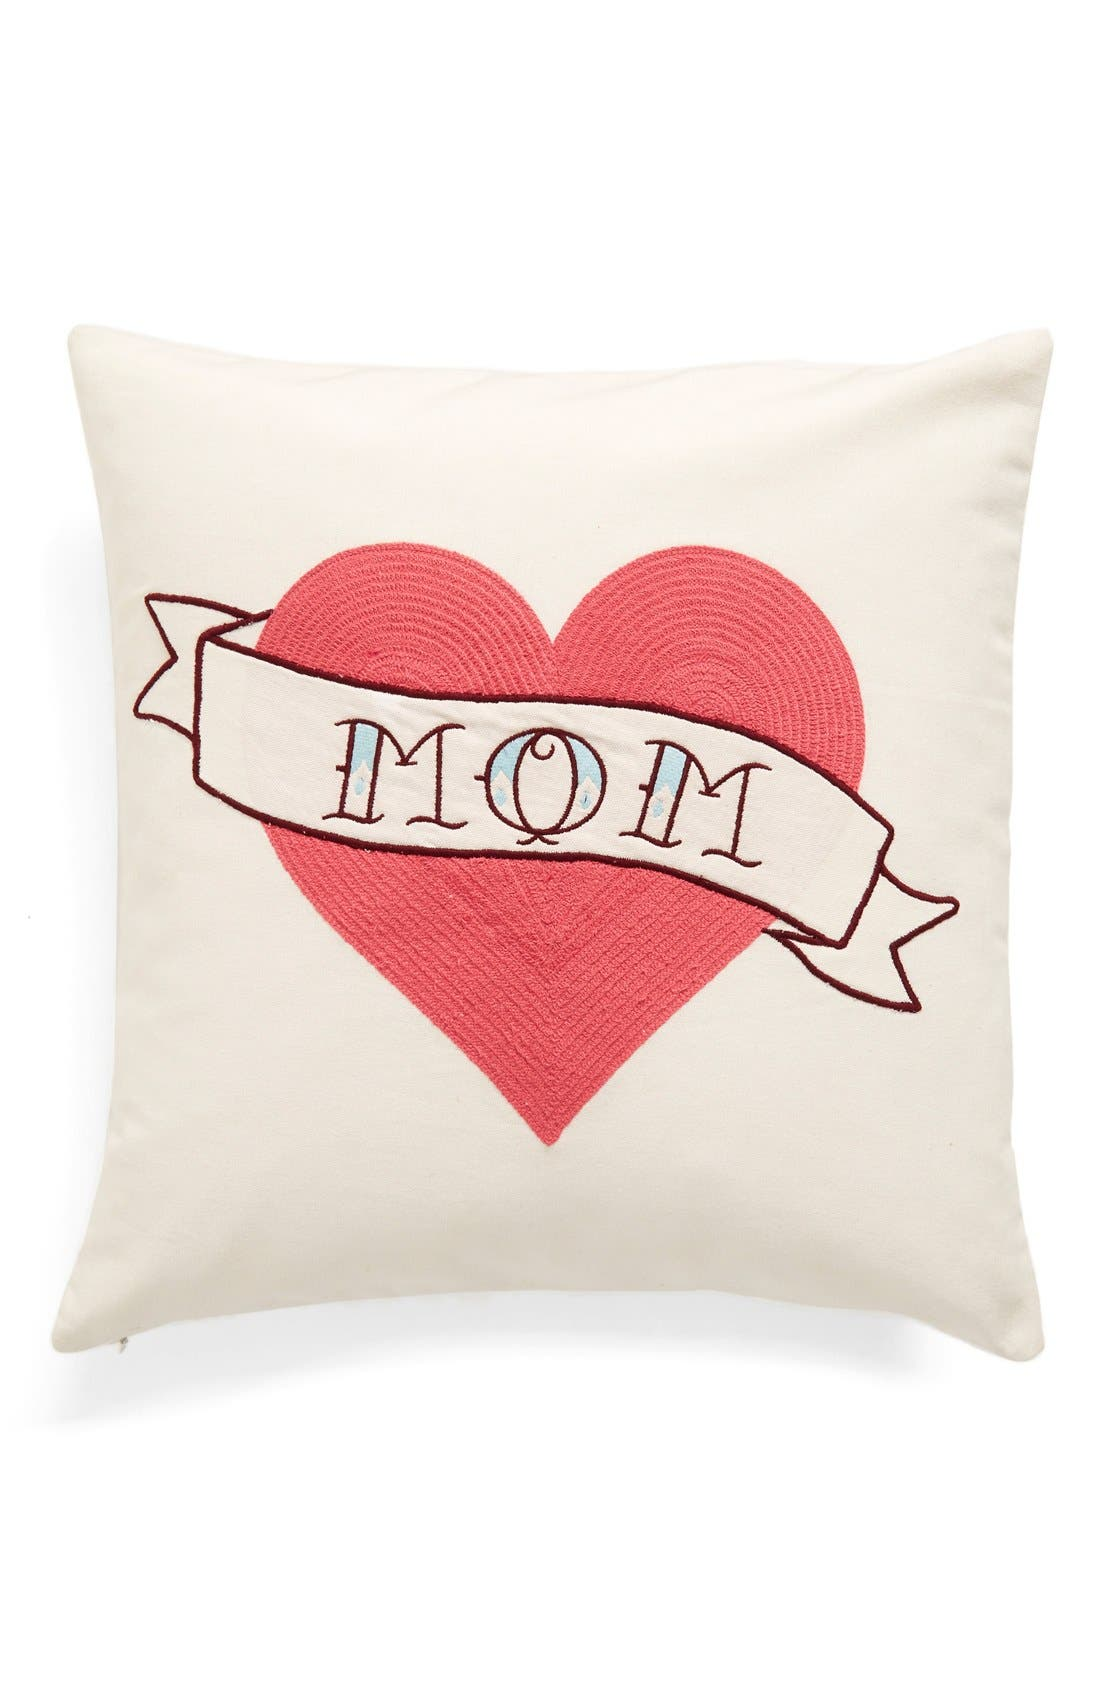 Alternate Image 1 Selected - Nordstrom at Home 'Mom Tattoo' Embroidered Pillow